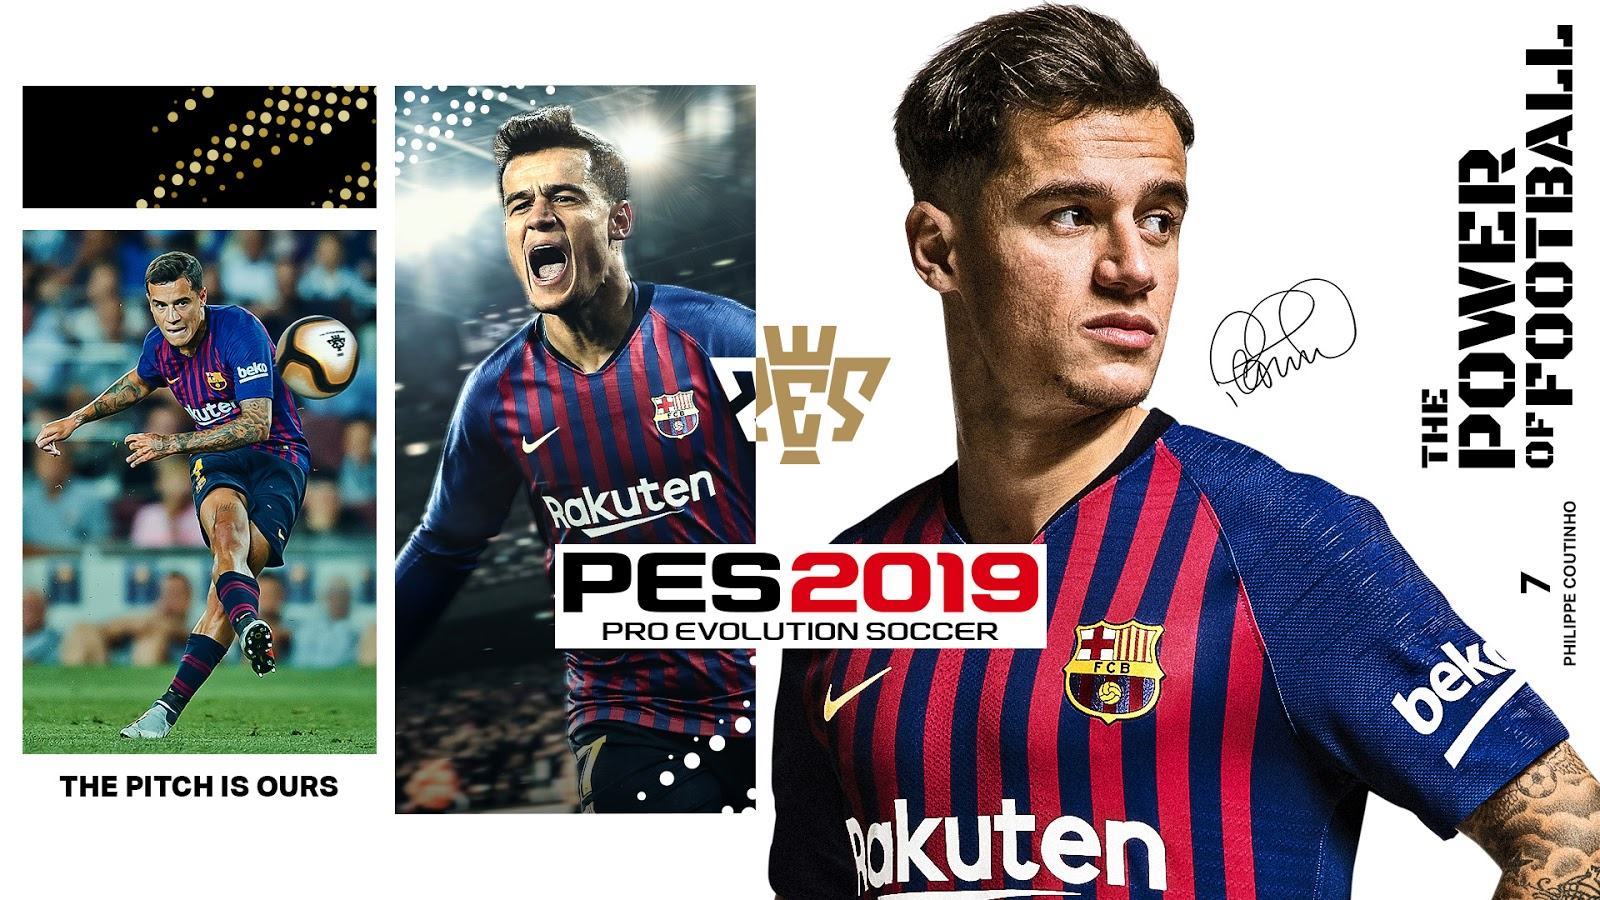 PES 2019 FOR ANDROID OS | RELEASE DATE AND NEW FEATURES OF PES 2019